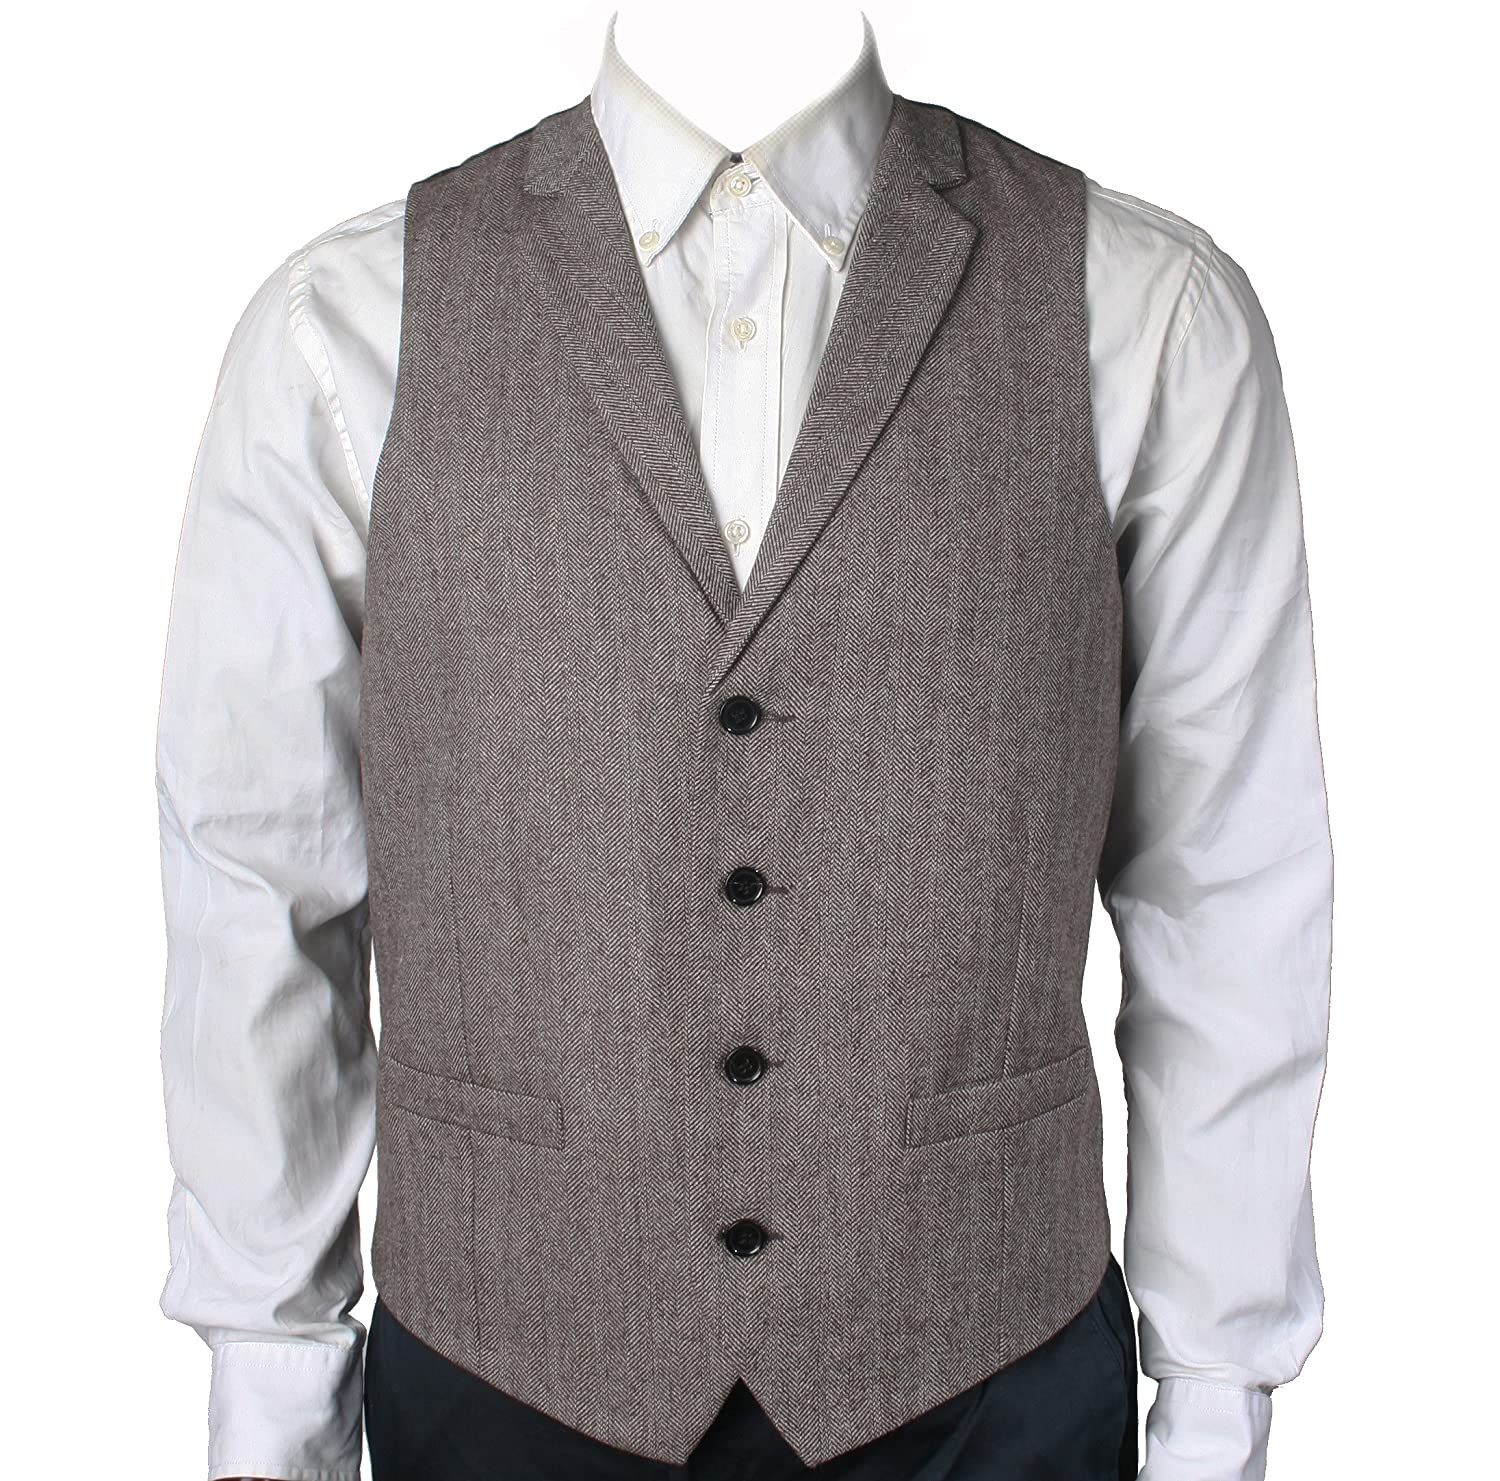 Steampunk Clothing- Men's Herringbone/Tweed Tailored Collar Suit Vest $37.00 AT vintagedancer.com